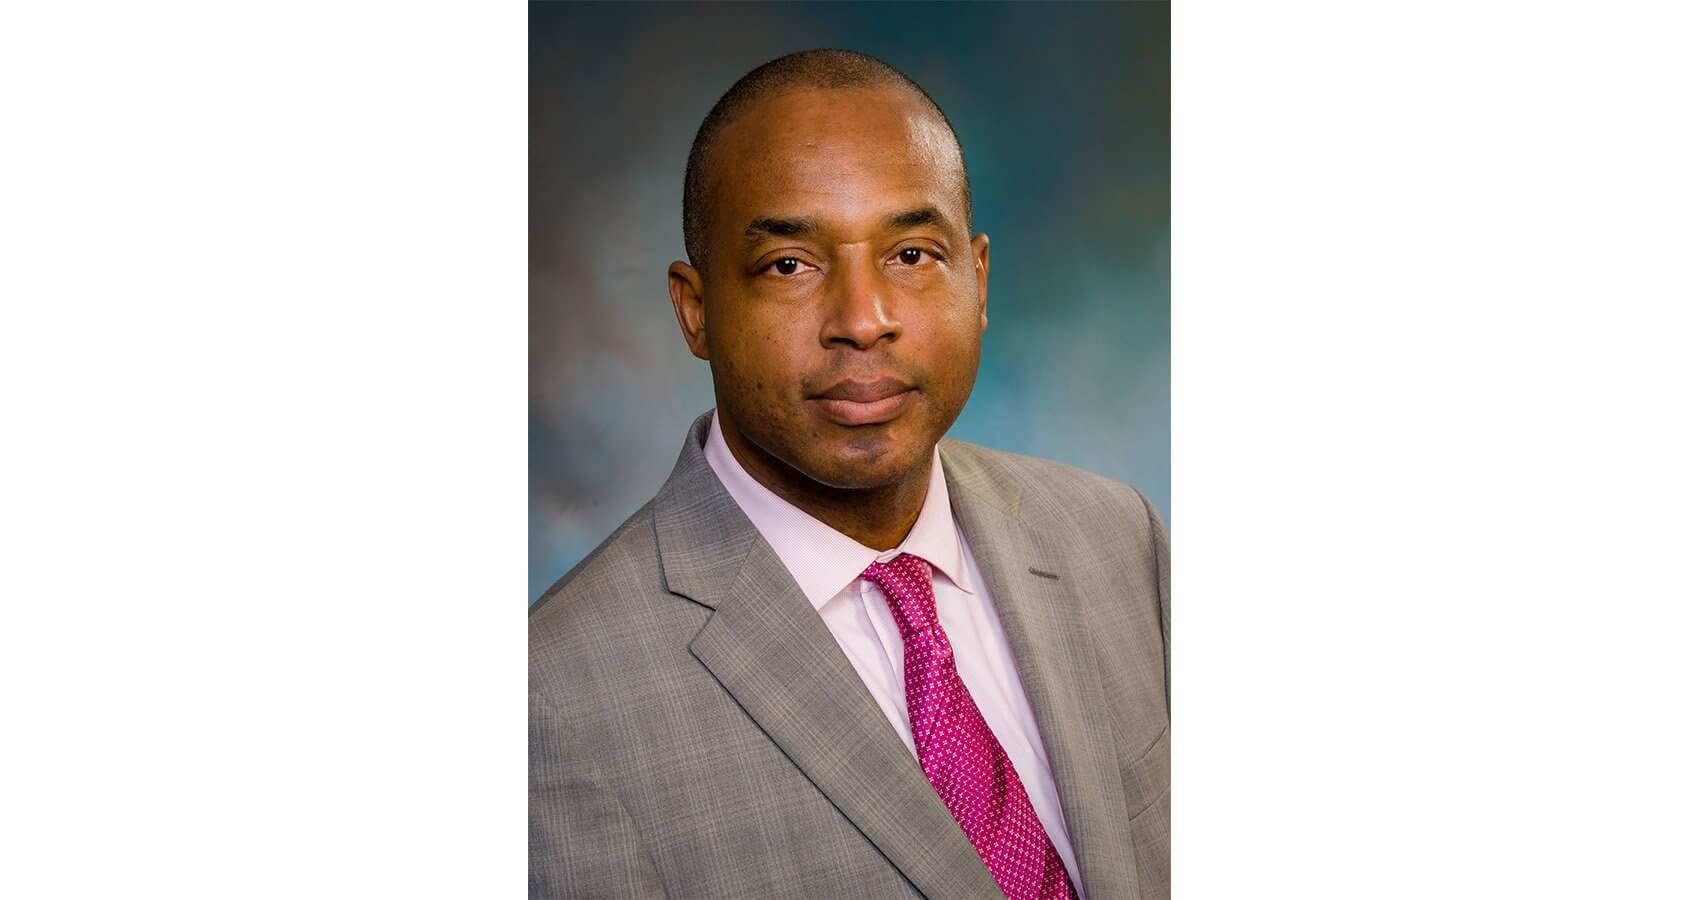 Selwyn Rogers, M.D., chief medical officer at the University of Texas Medical Branch at Galveston.